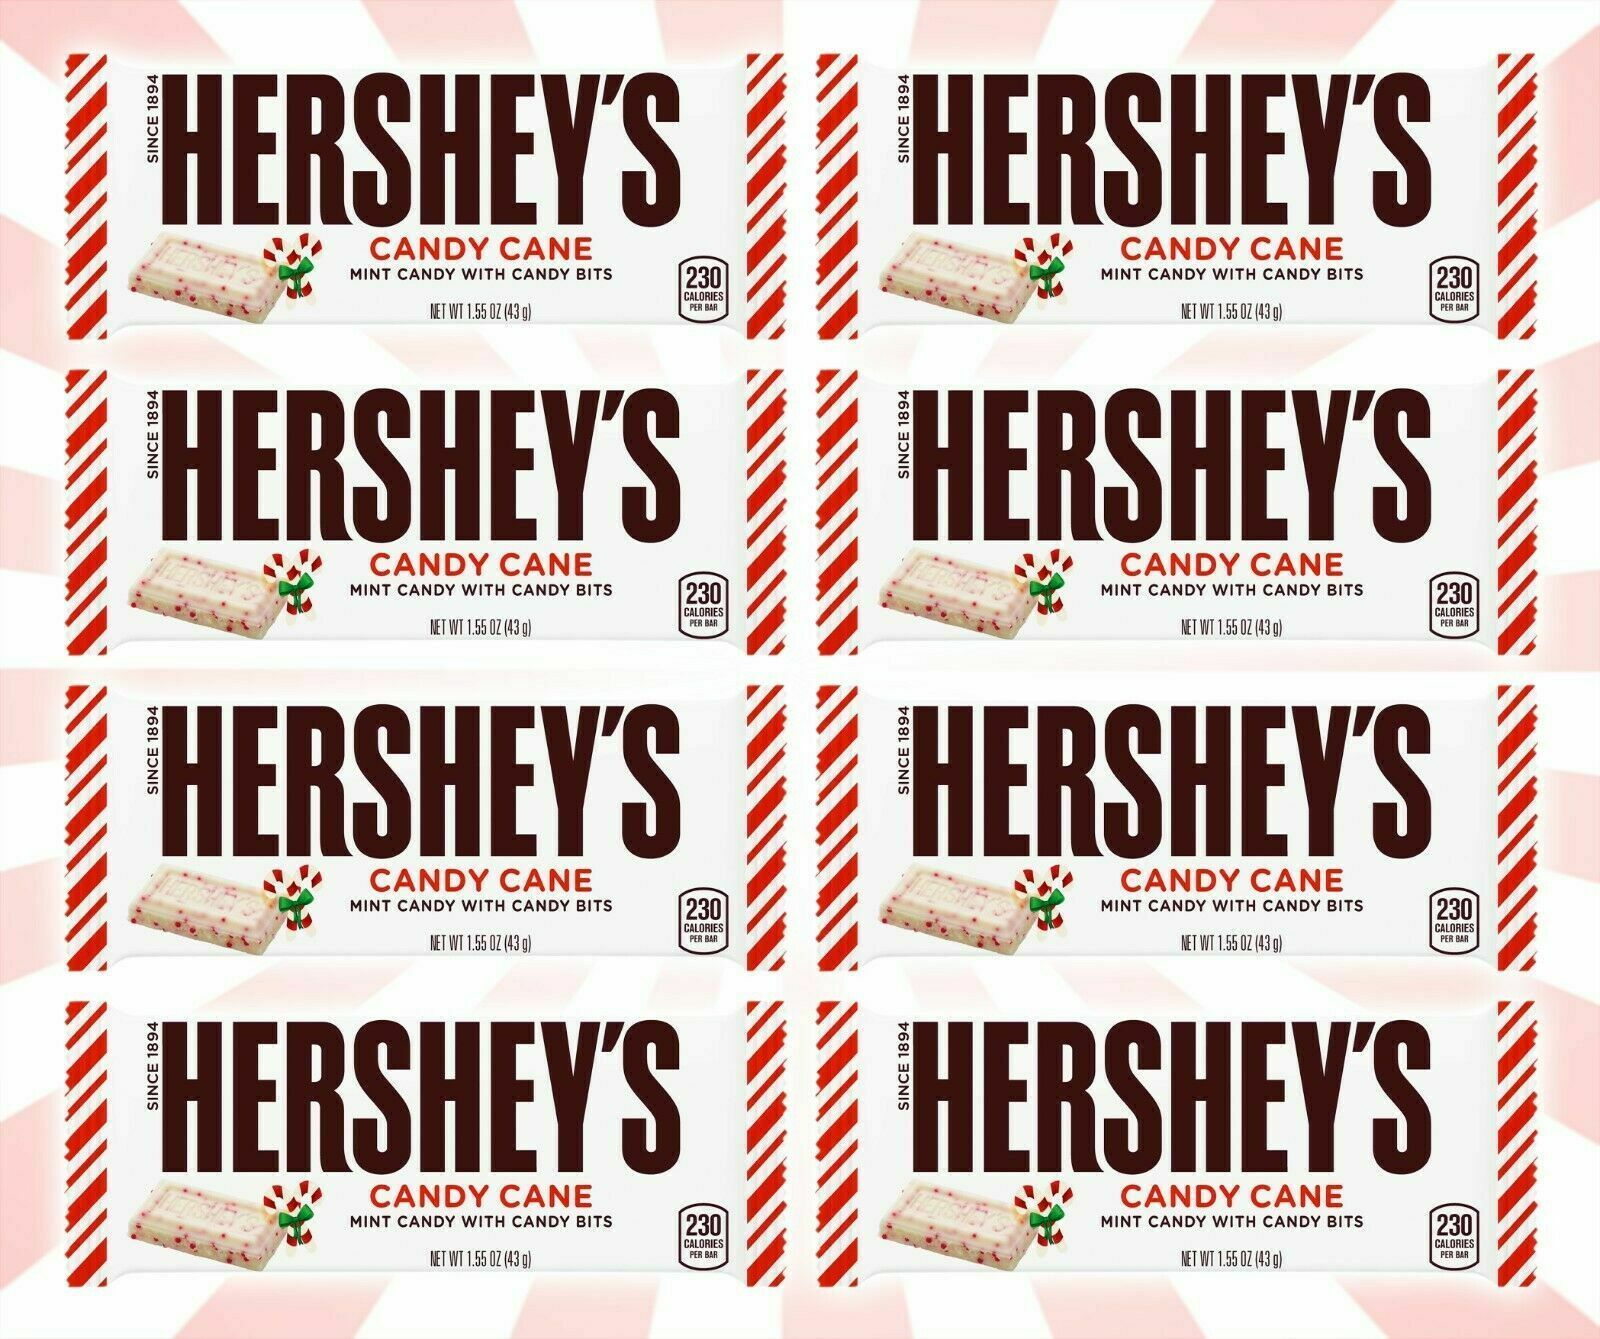 8 Hershey's Candy Cane Chocolate Bar Christmas candy LIMITED EDITION 1.5 OZ